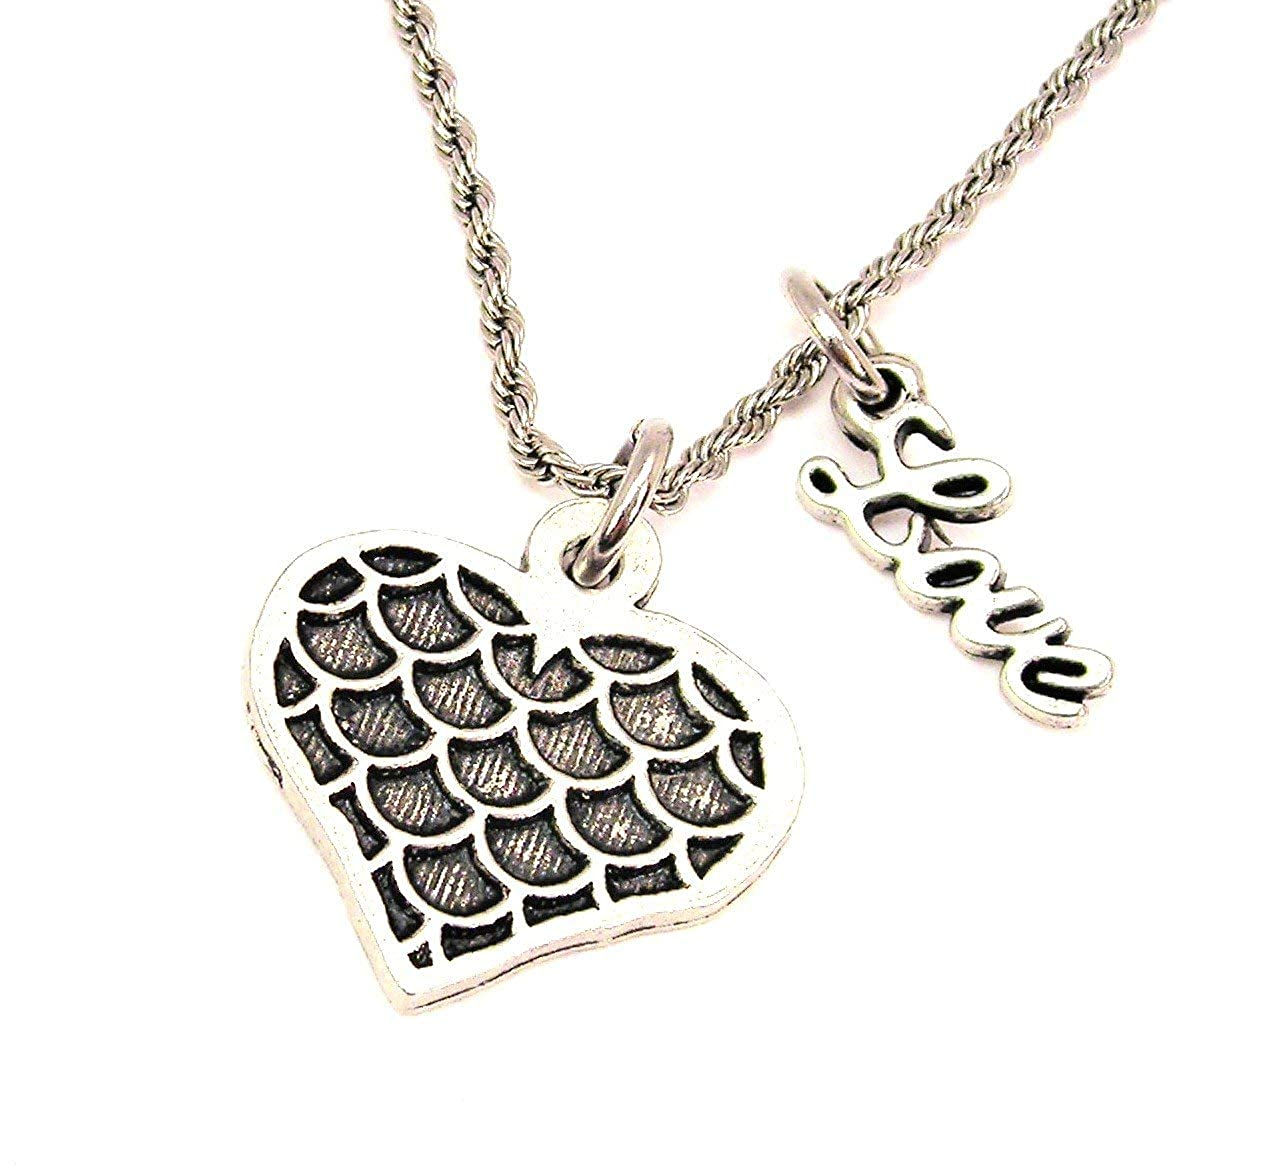 ChubbyChicoCharms Mermaids Heart Stainless Steel Rope Chain Necklace with White Crystal Accent